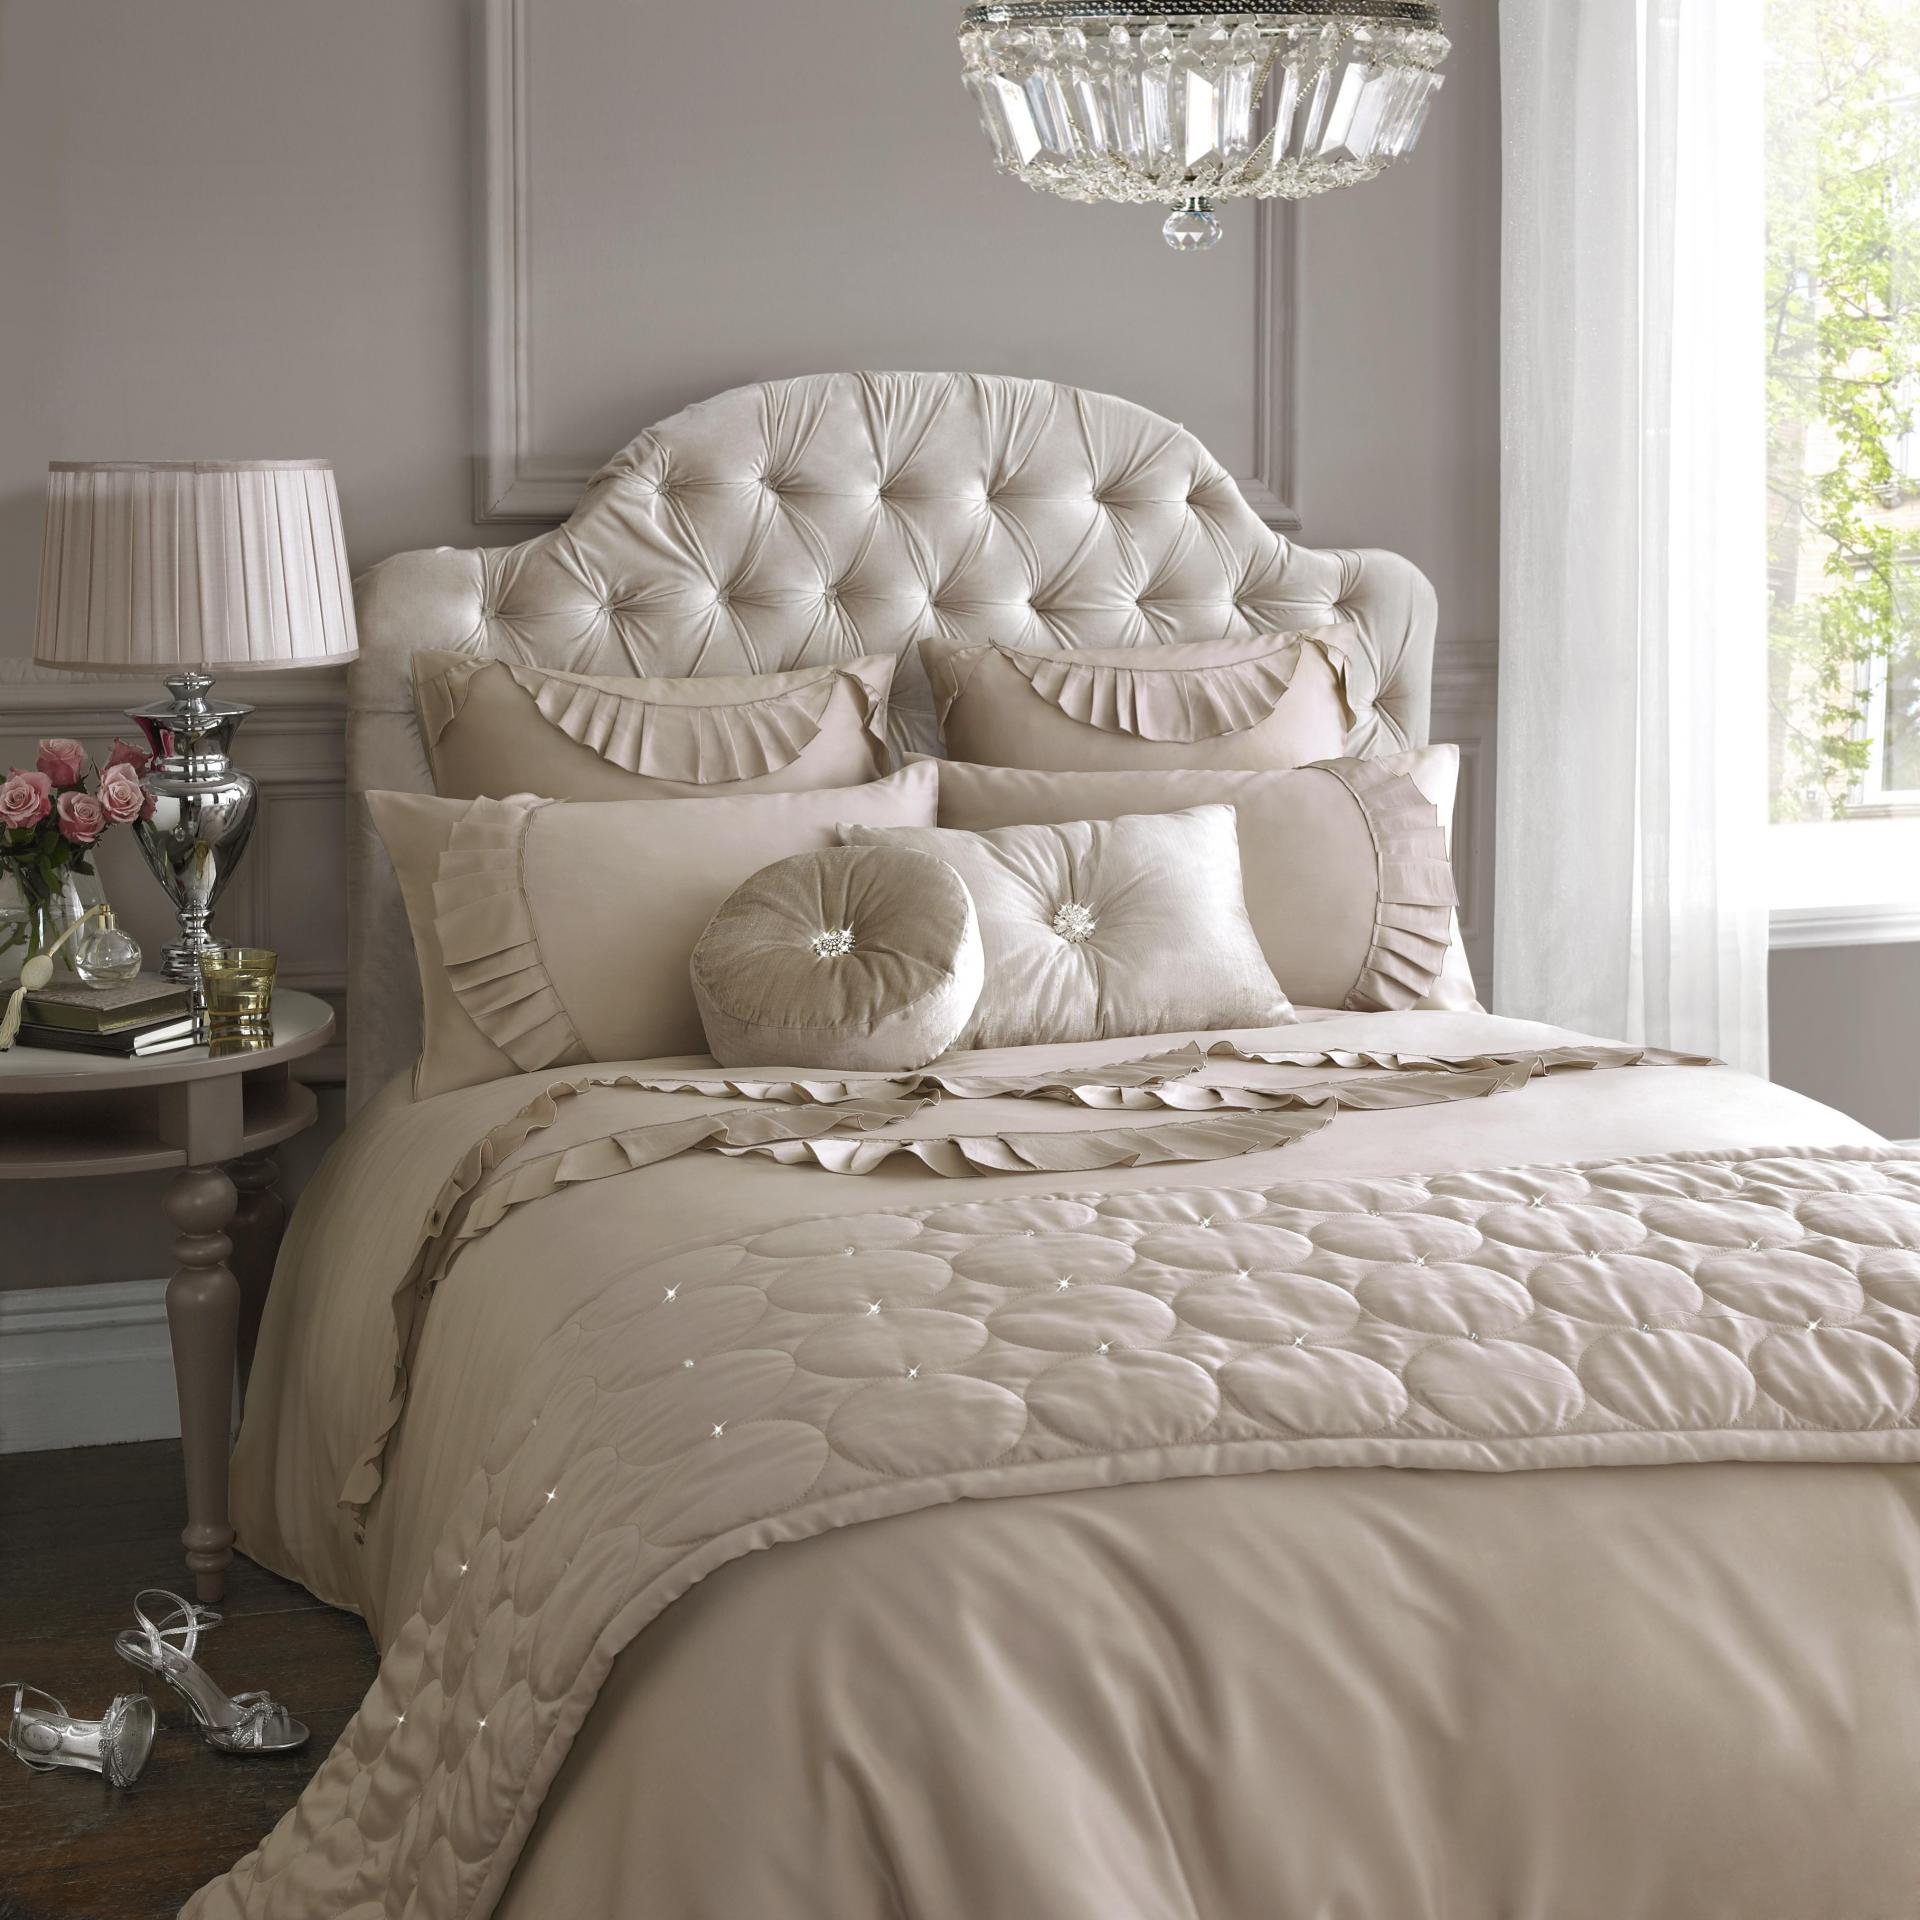 Luxurius Summer Spring Bedding Sets Designs (View 6 of 10)